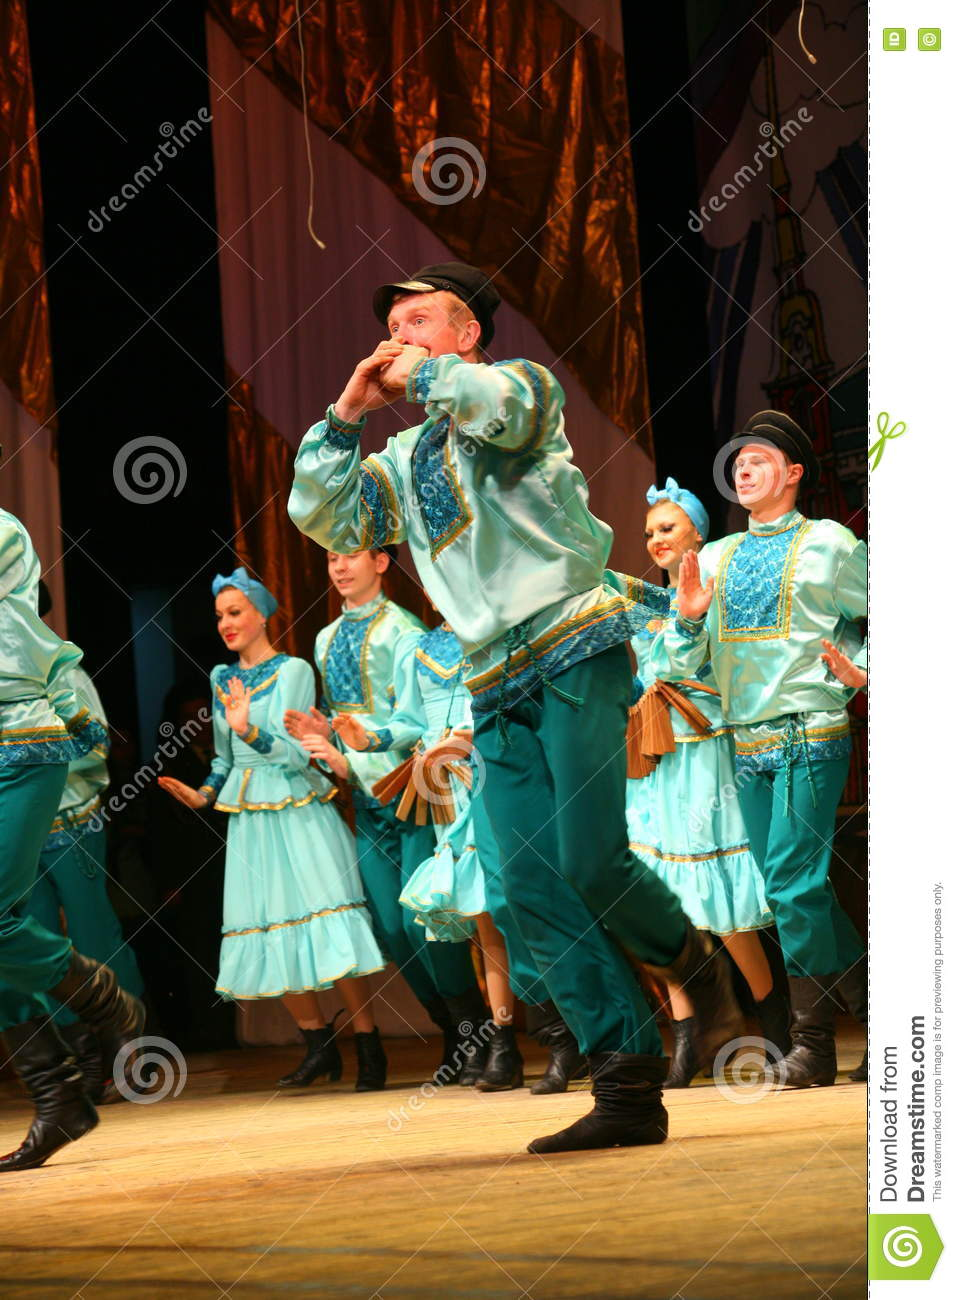 Russian traditional dance festivals of the factory outskirts - merry quadrille